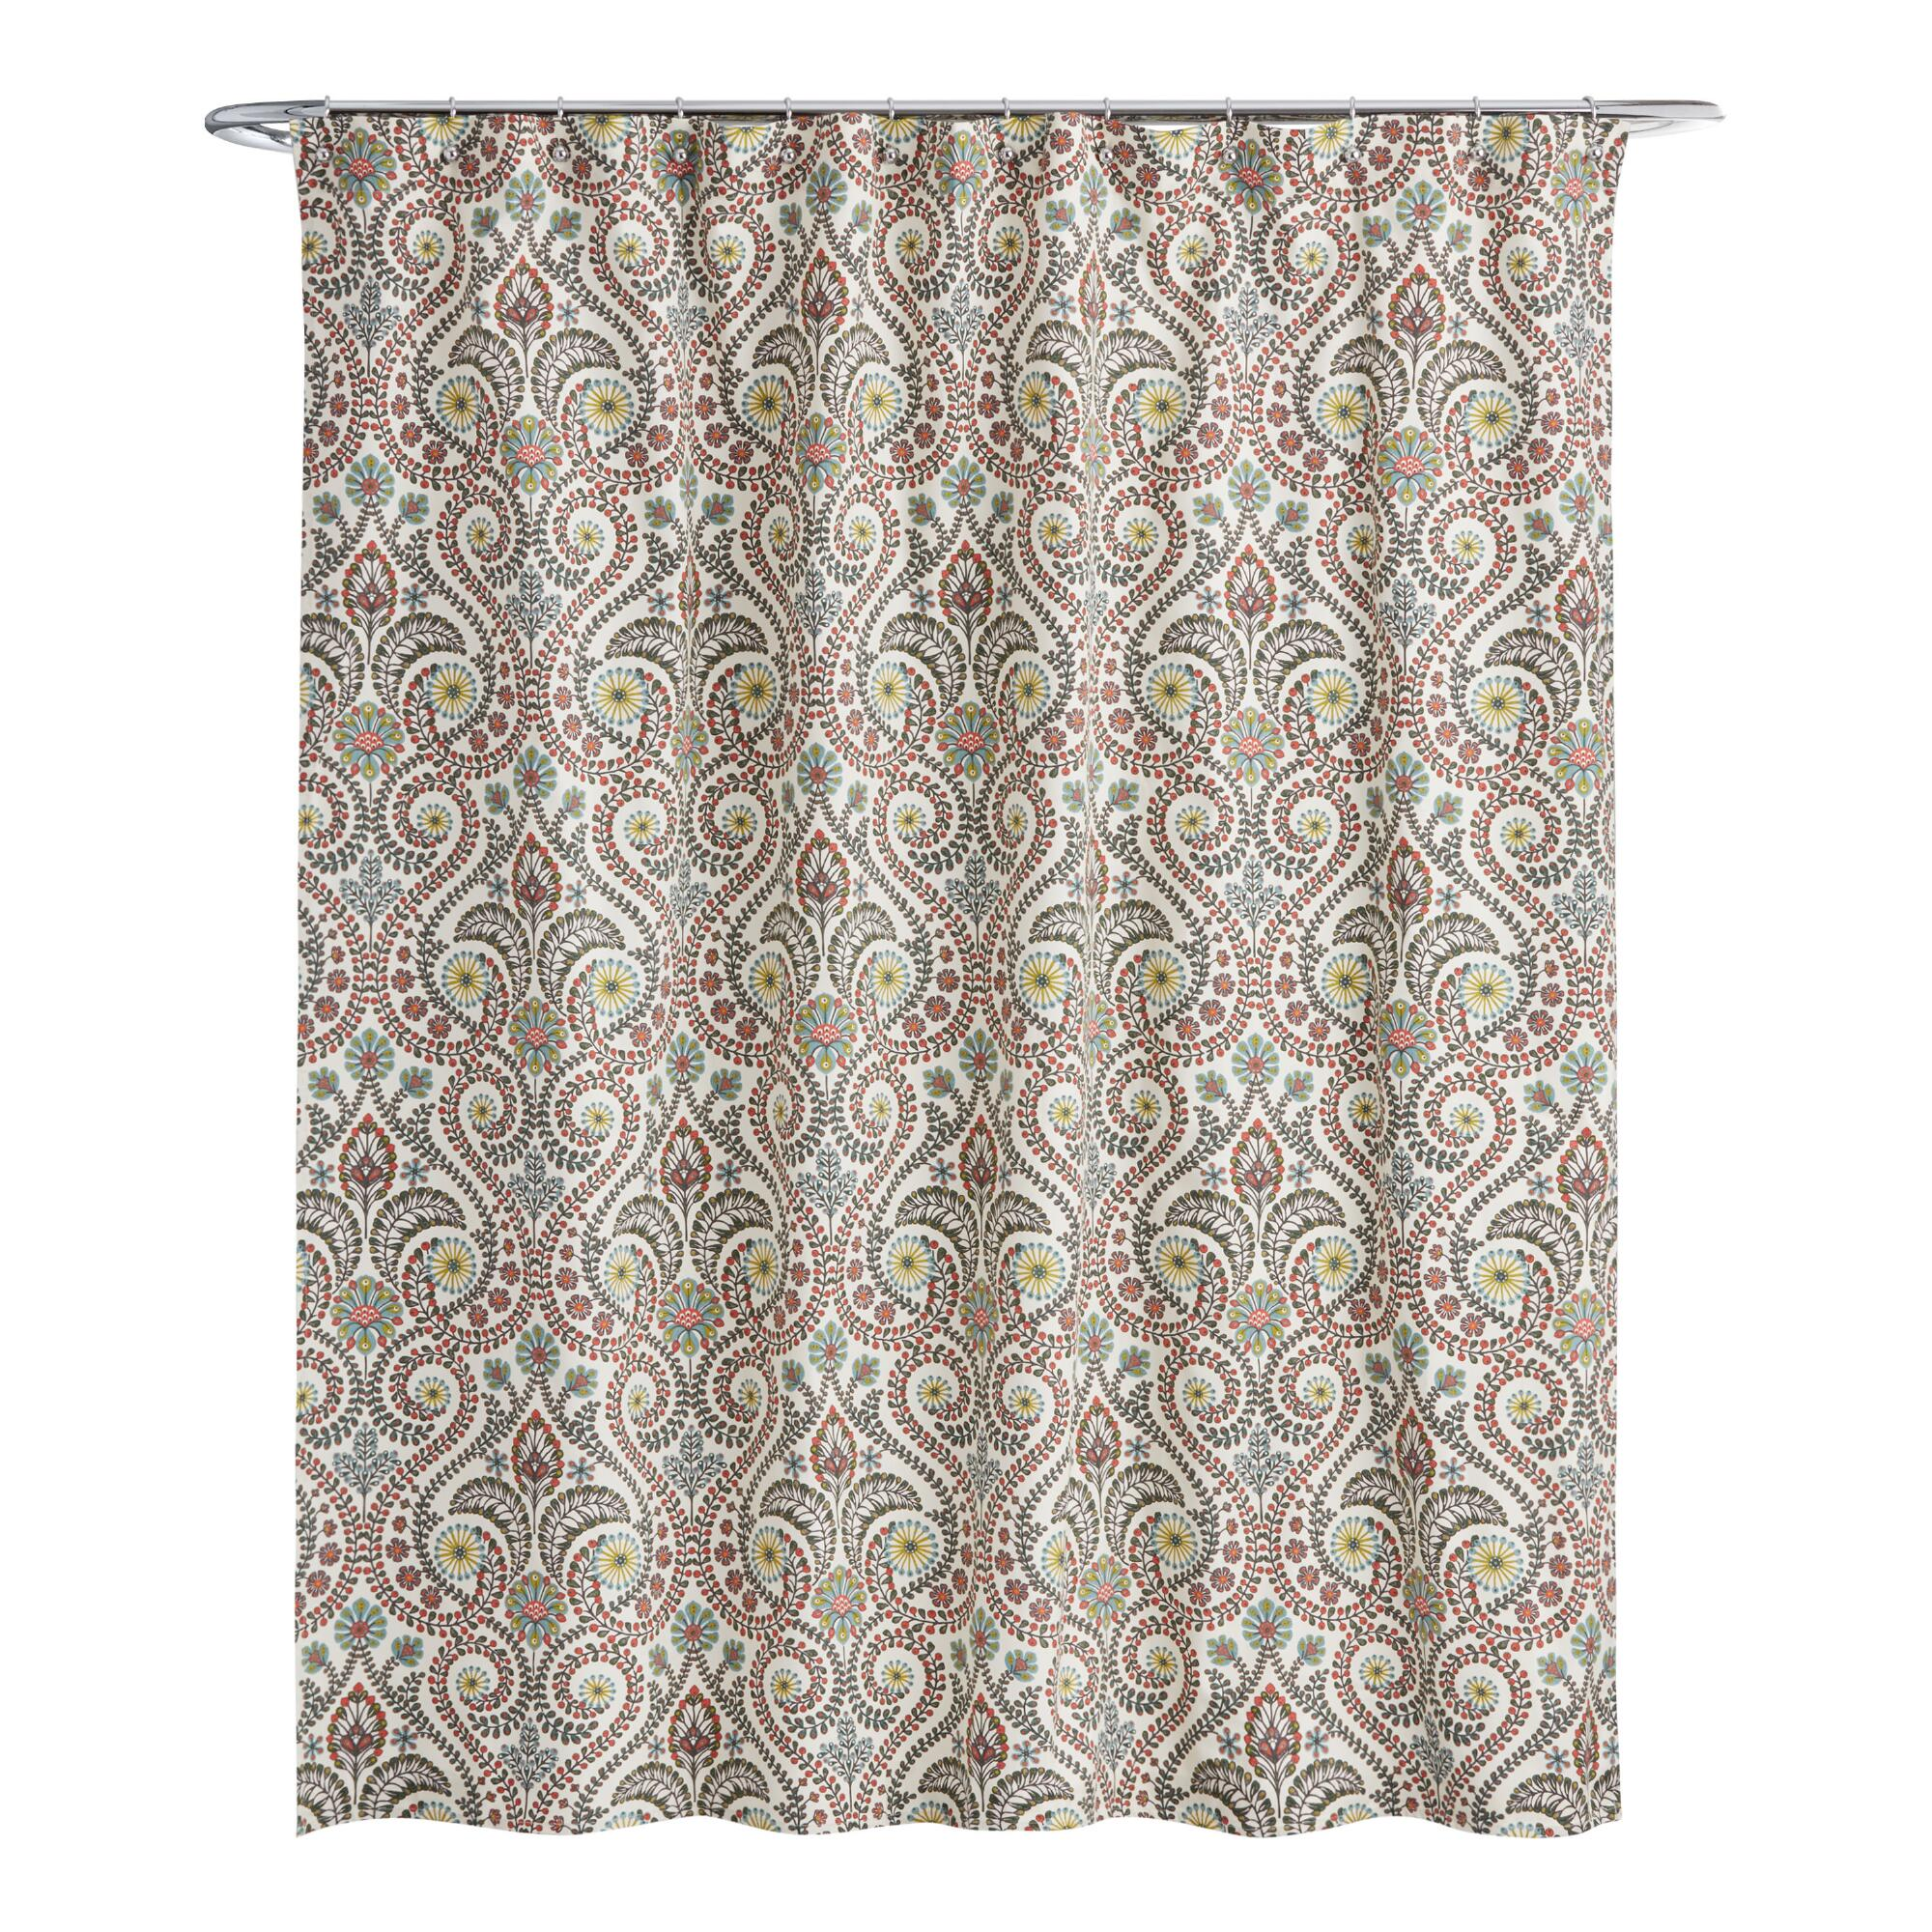 Mint green shower curtain and rugs - Treetop Shower Curtain